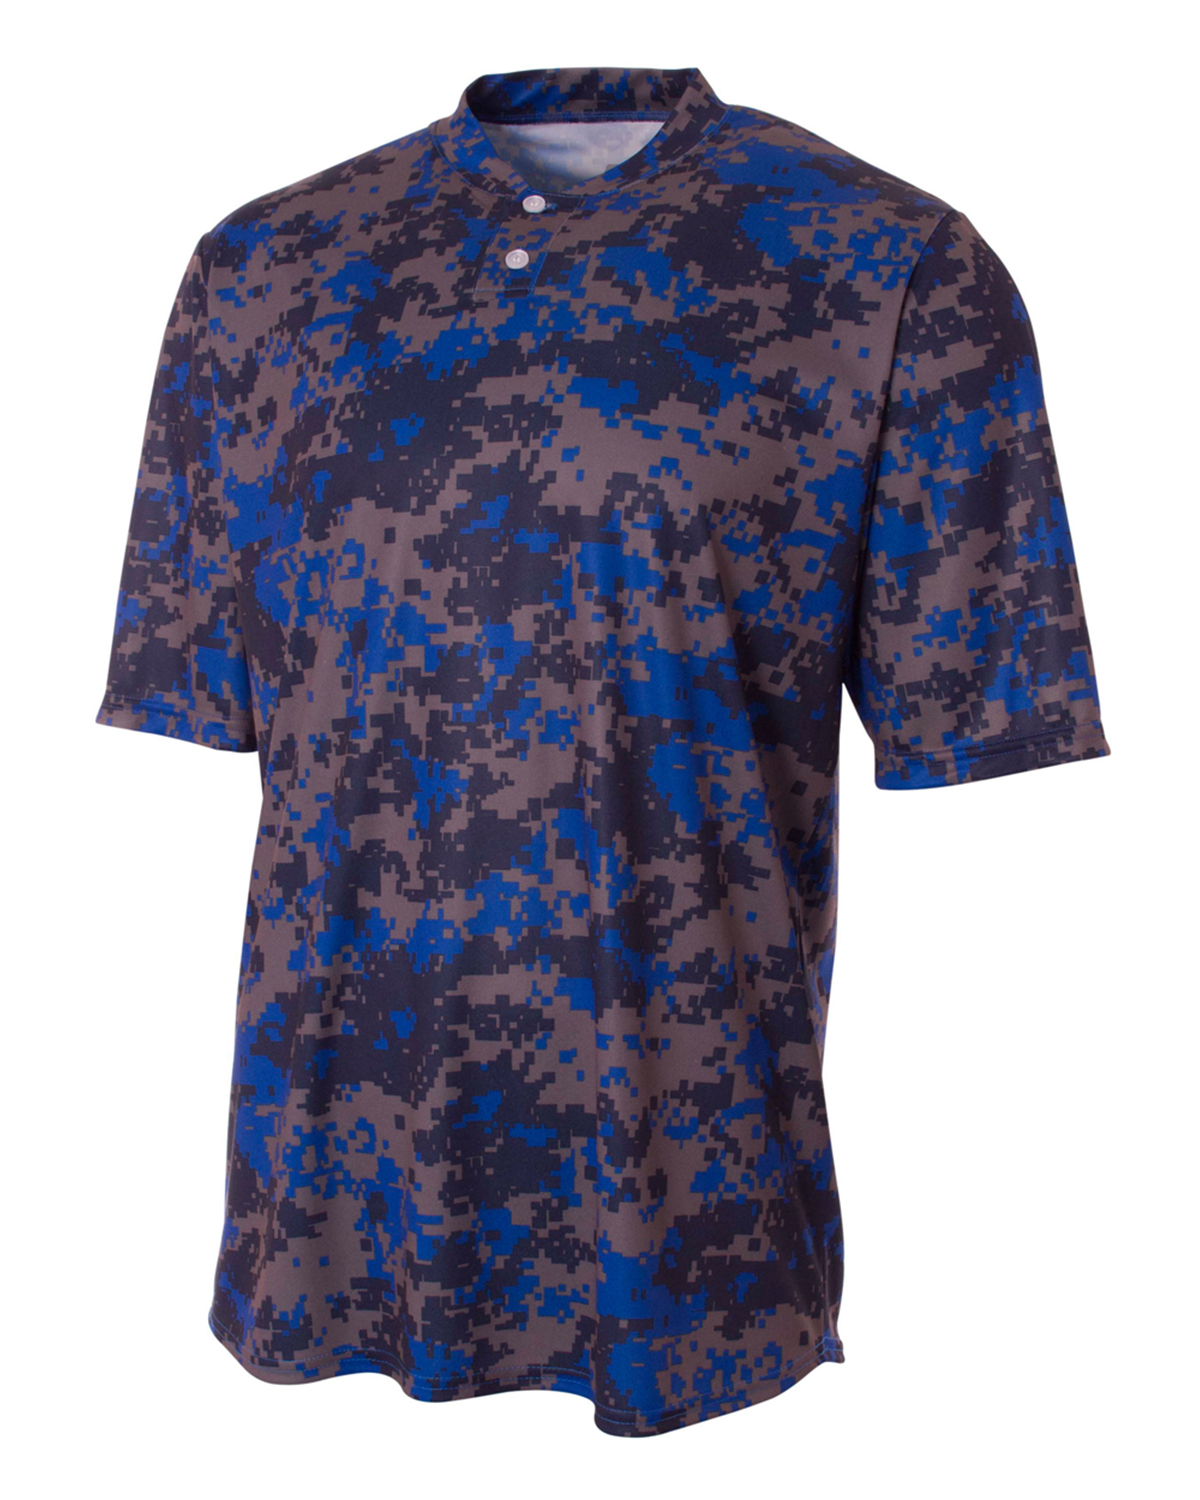 A4 Drop Ship N3263 - Camo 2-Button Henley Shirt